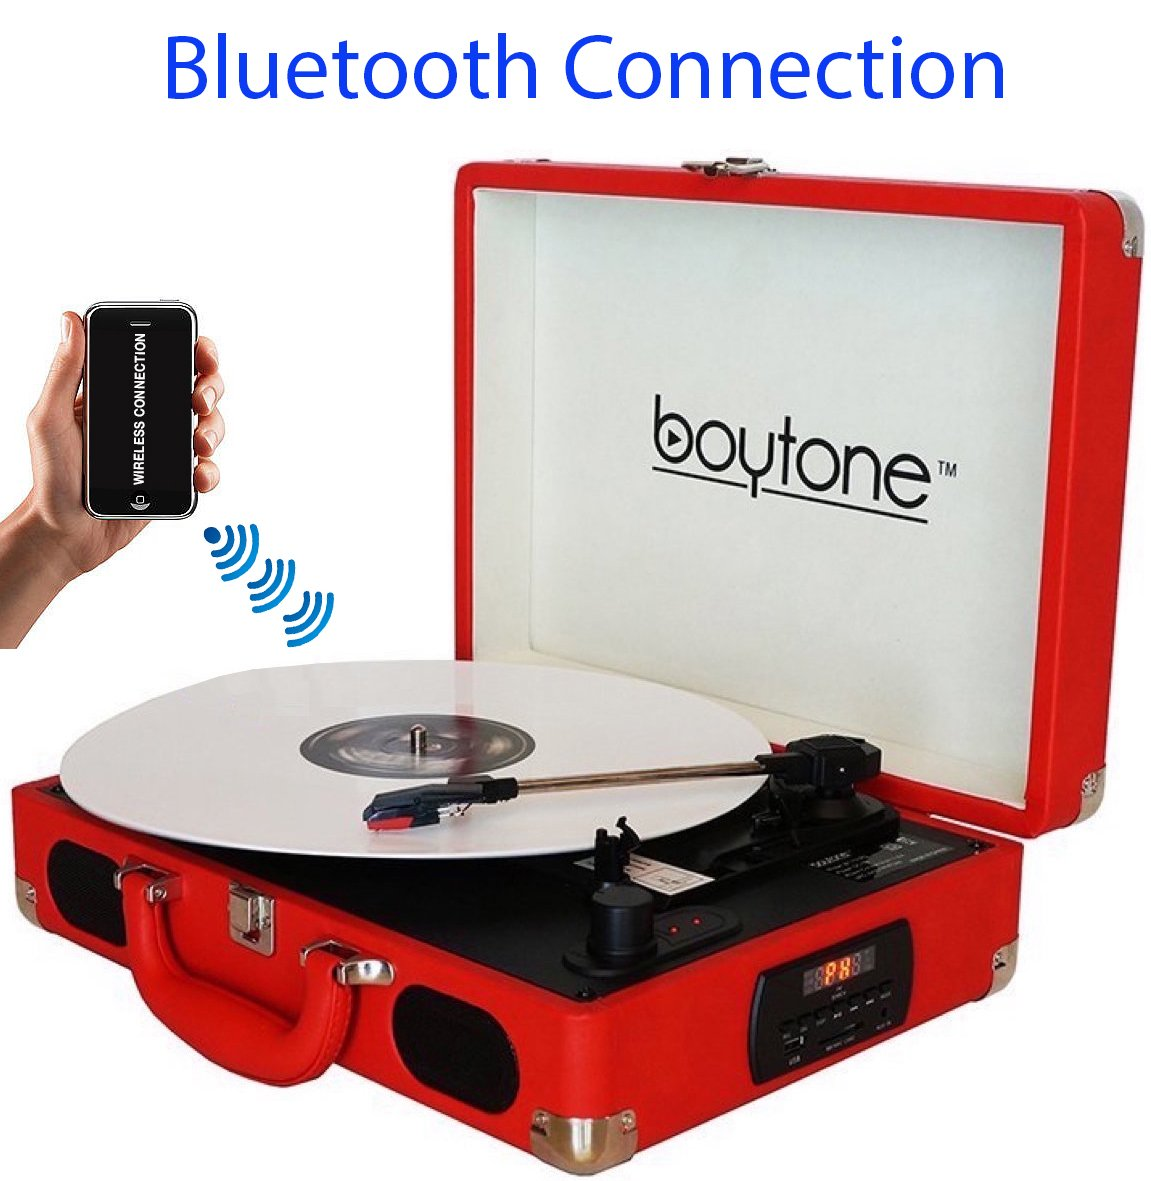 Boytone BT-101RD Bluetooth Turntable Briefcase Record player AC-DC, Built in Rechargeable Battery, 2 Stereo Speakers 3-speed, LCD Display, FM Radio, USB/SD,RCA, AUX / MP3, Encoding, 110/220 Volt.